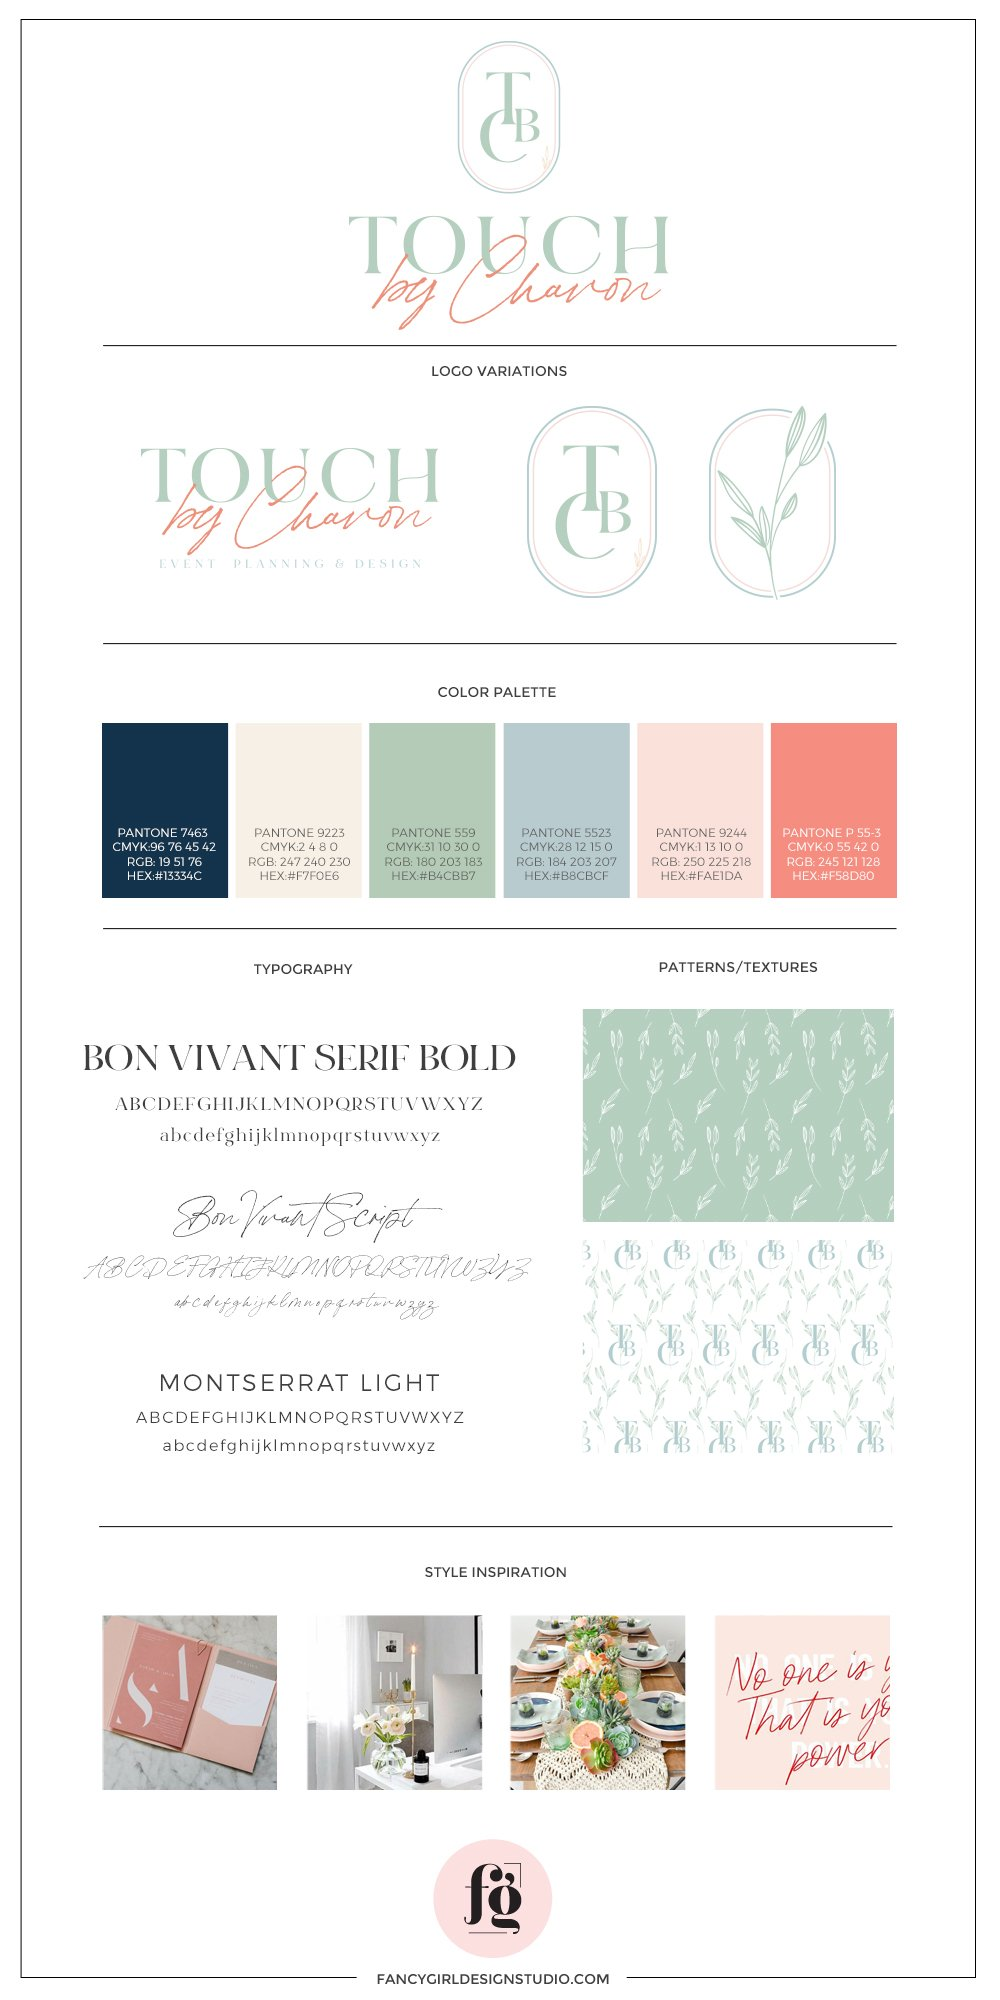 Brand guide for Touch by Chavon | Designed by Fancy Girl Design Studio